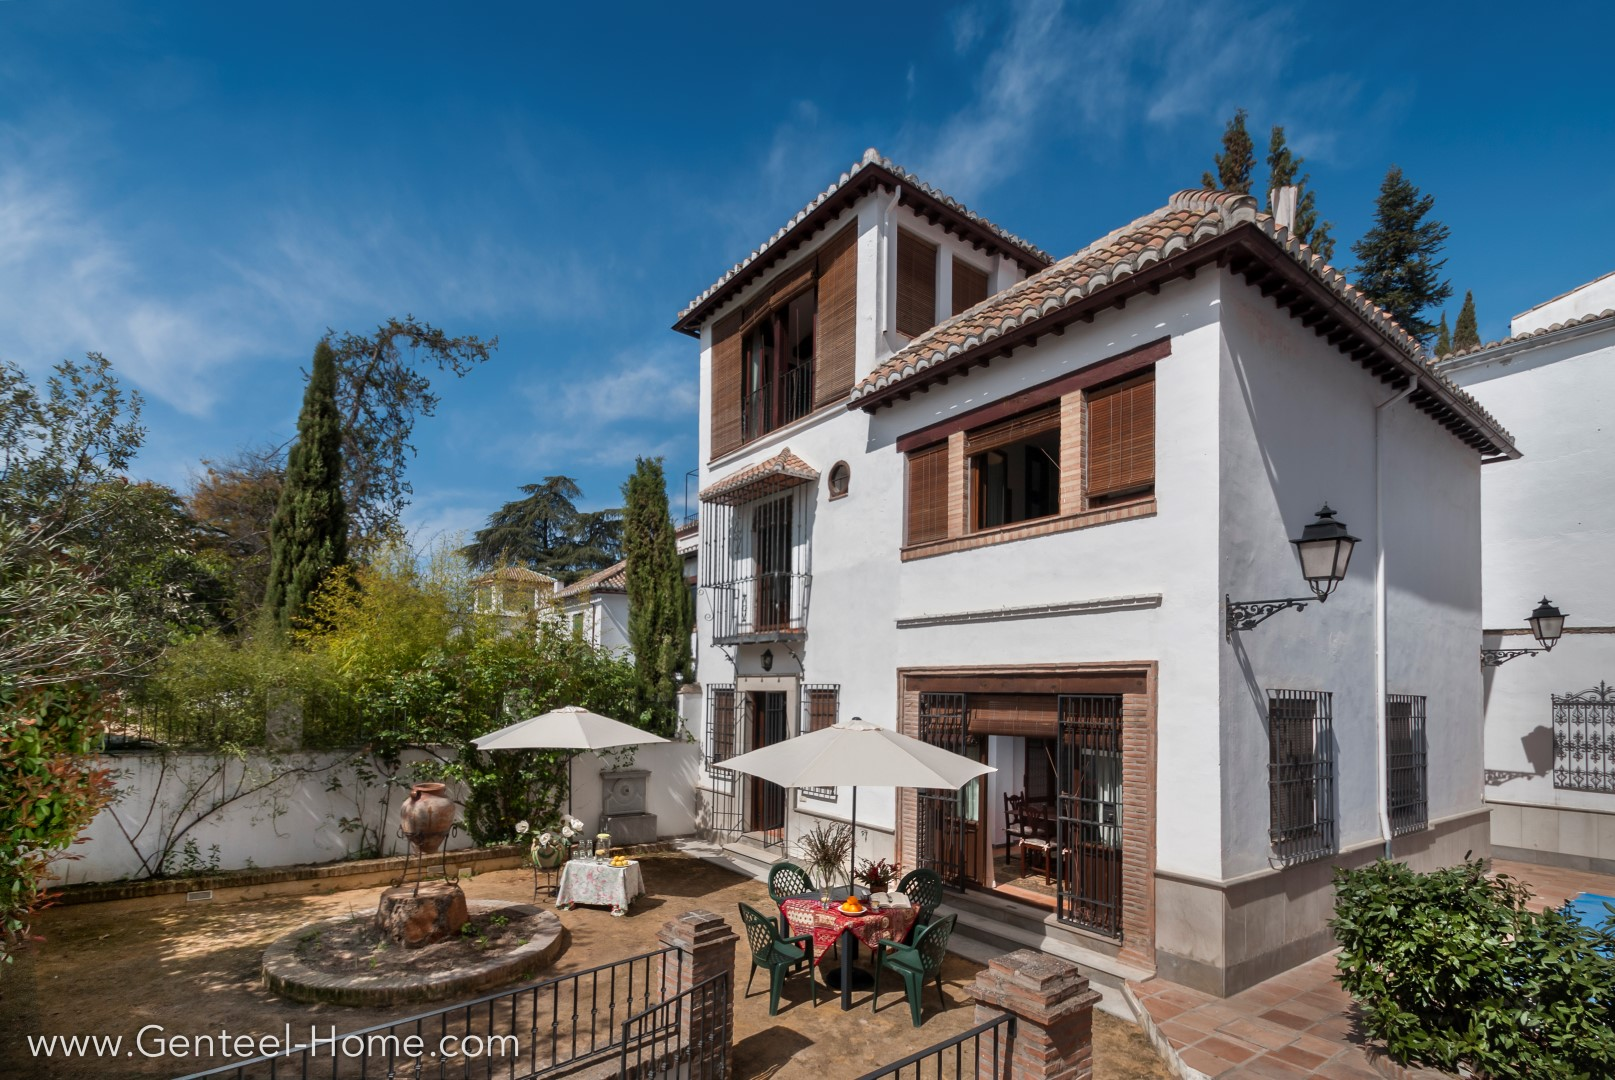 Houses in spain houses for rent in spain genteel home Seville house